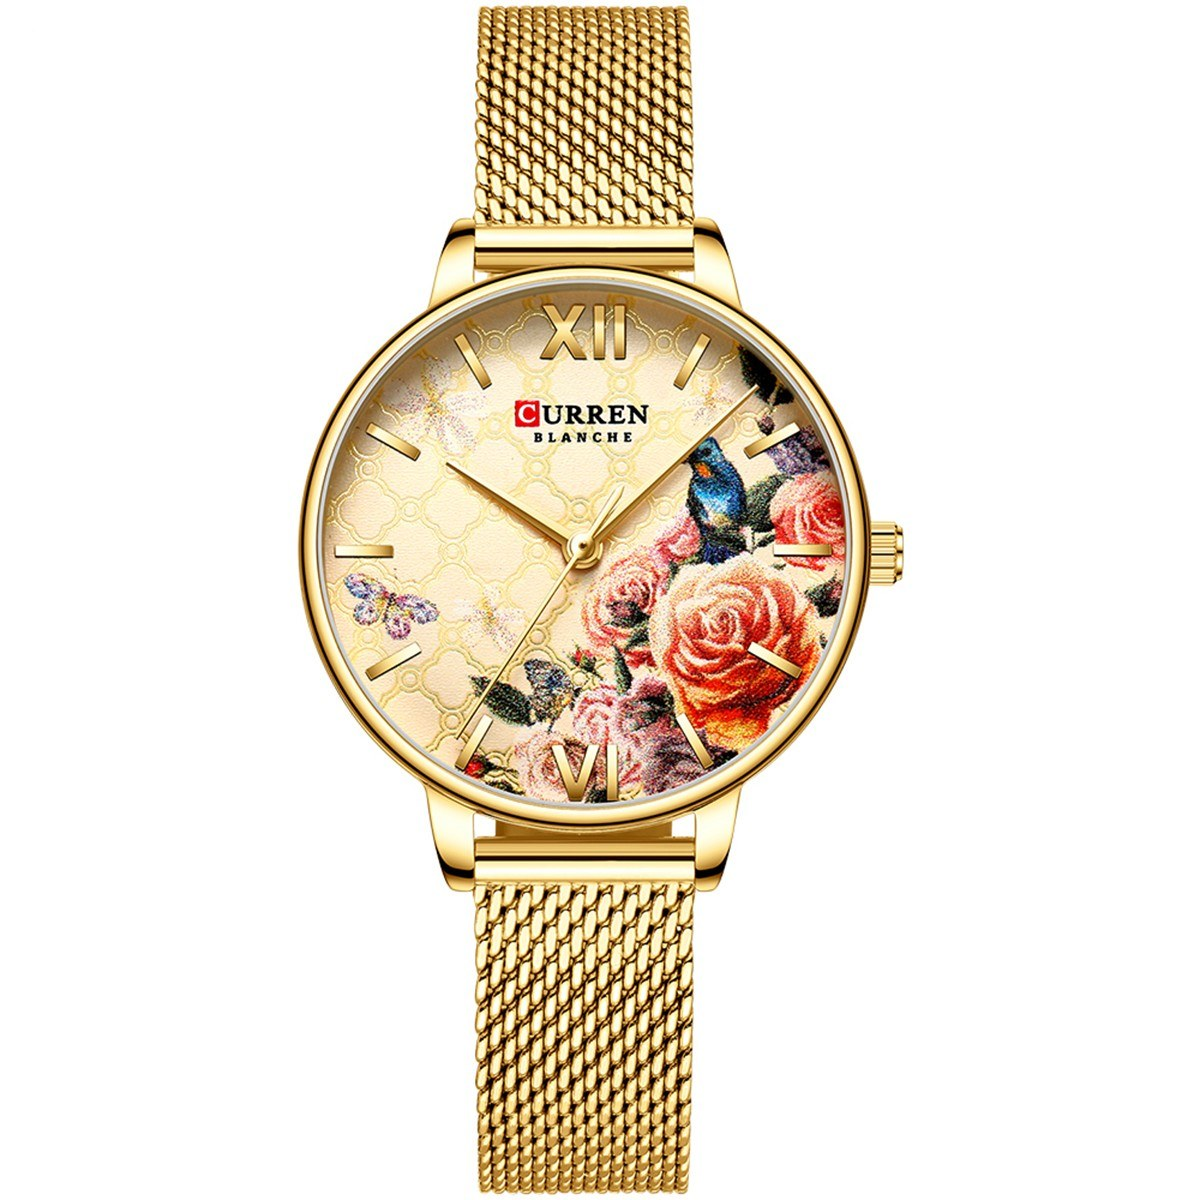 CURREN 9060 Luxury Casual Business Quartz Women Watch Flower Dial Elegant Exquisite Lady Wrist Watch 3ATM Waterproof Clock Wristwatch for Female Ladies with Stainless Steel Mesh Strap Band